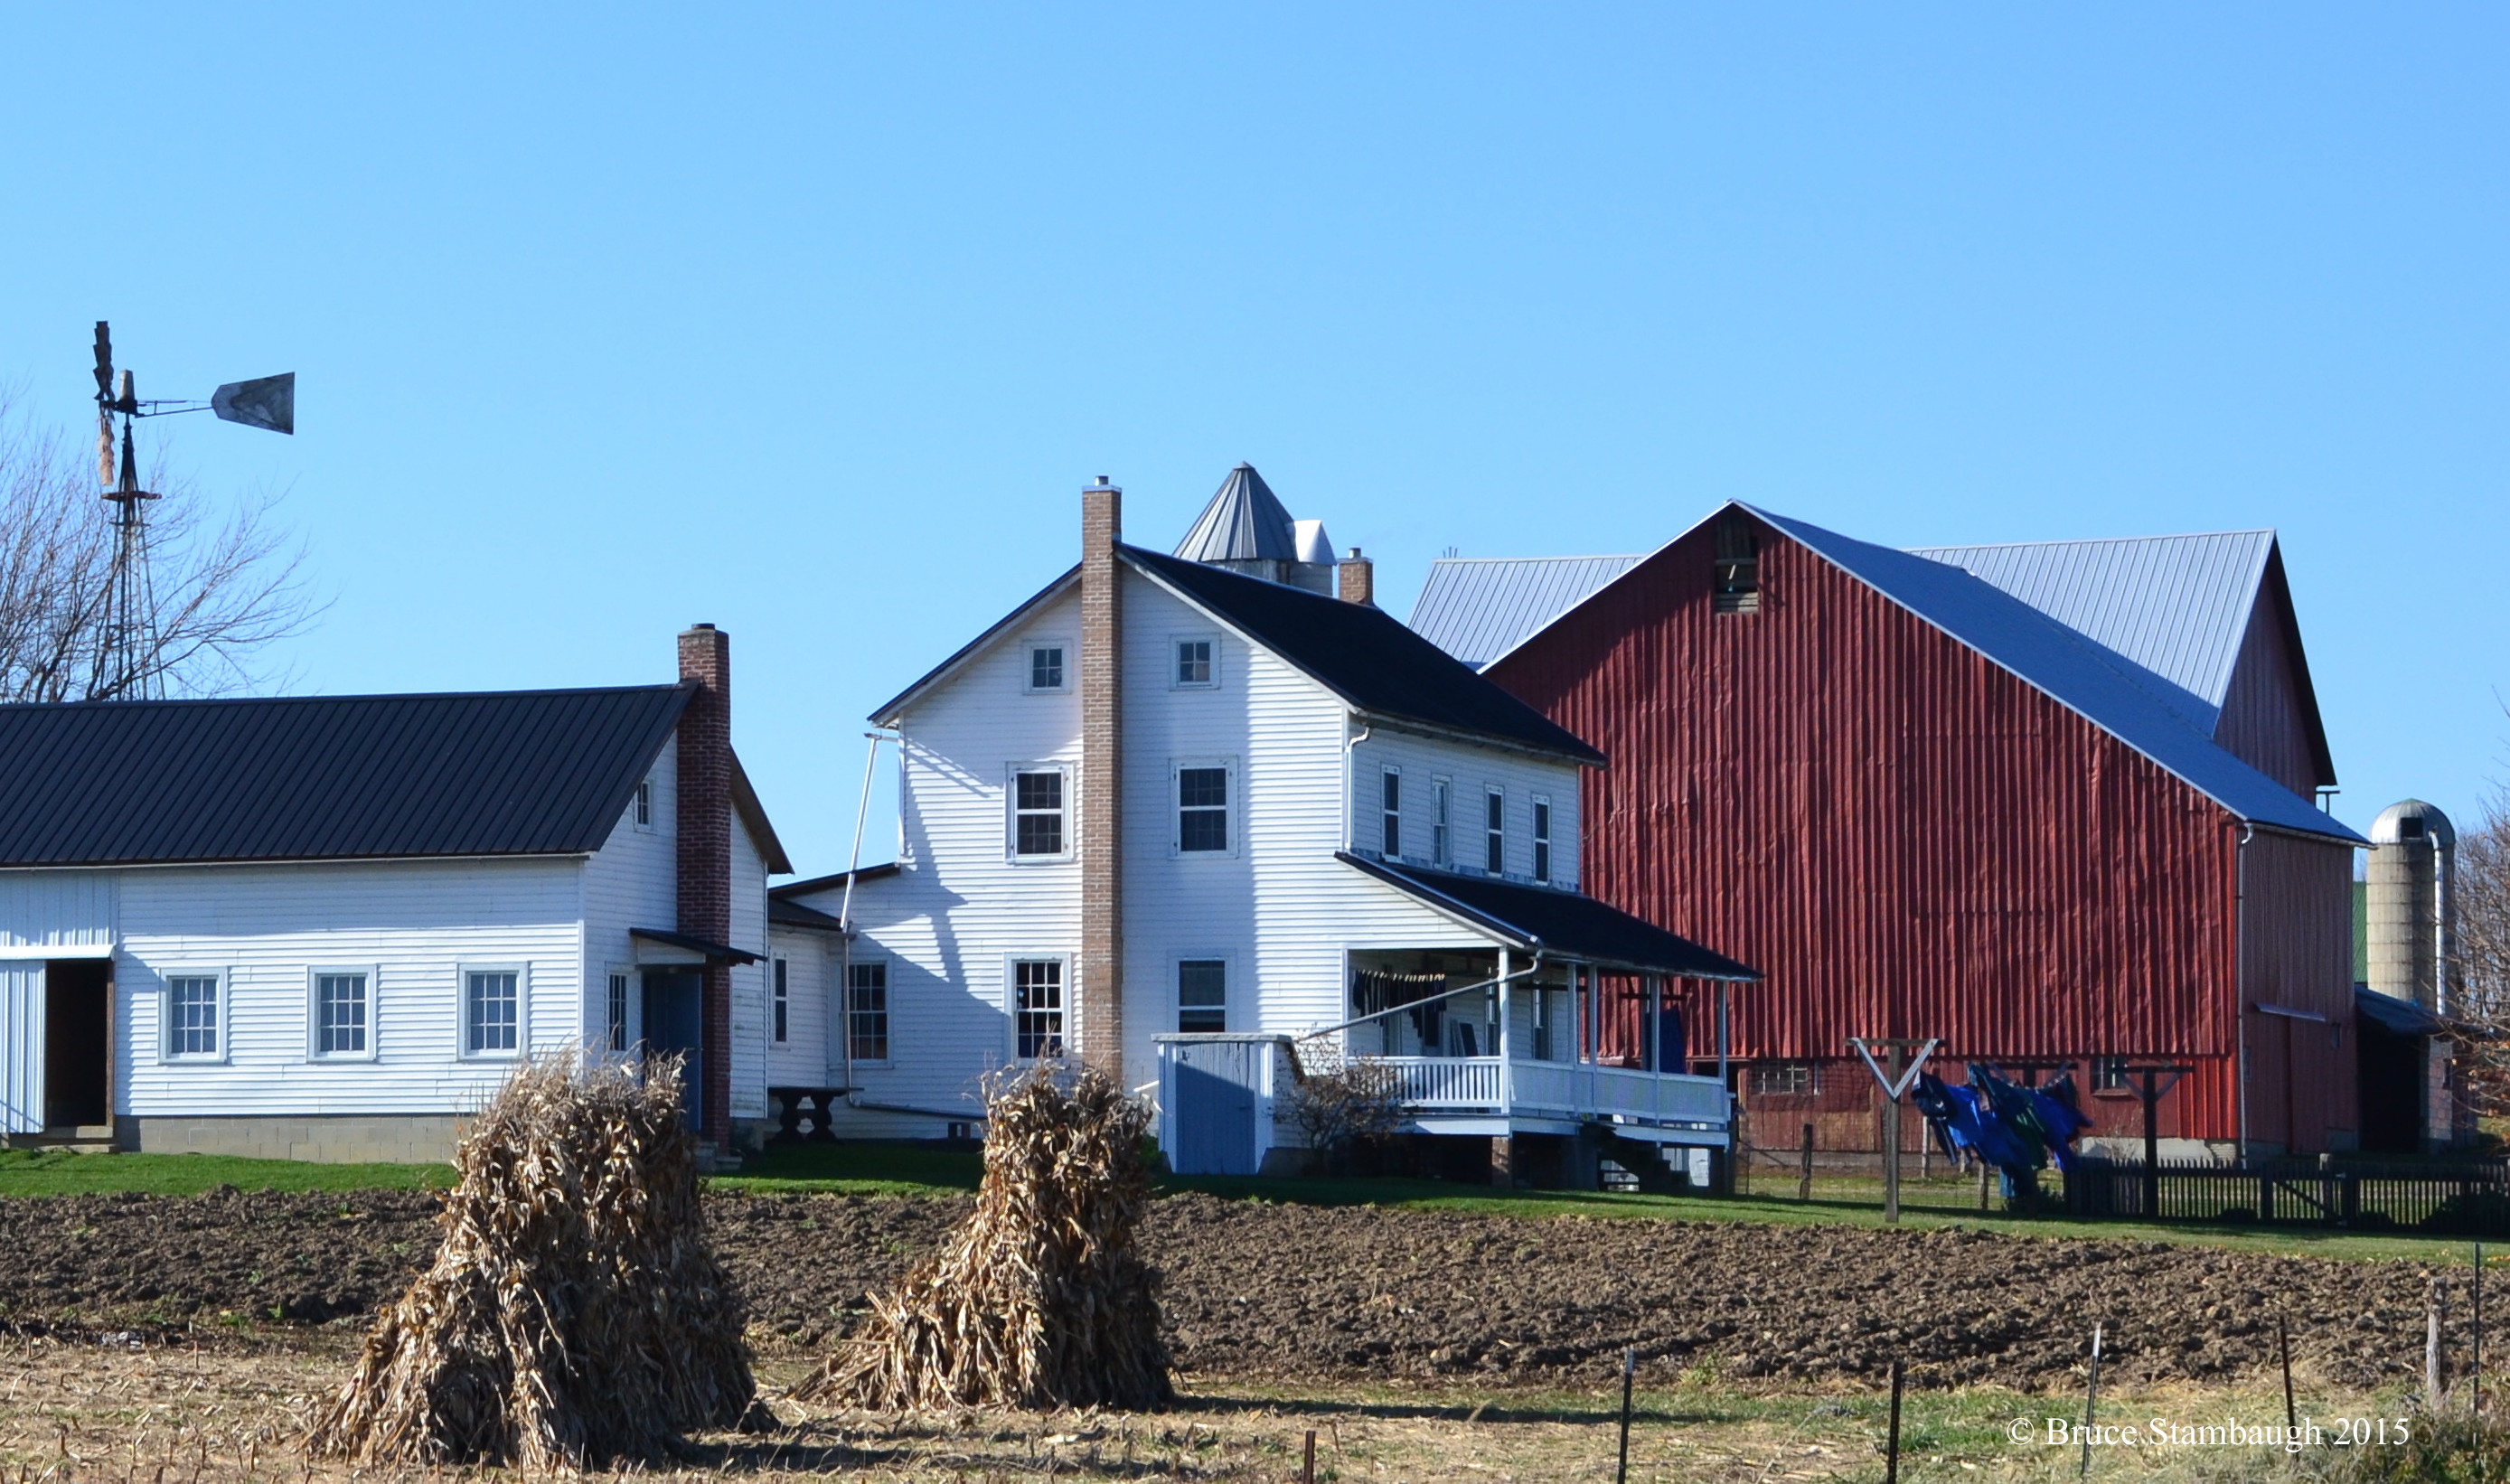 Amish farm, wash day